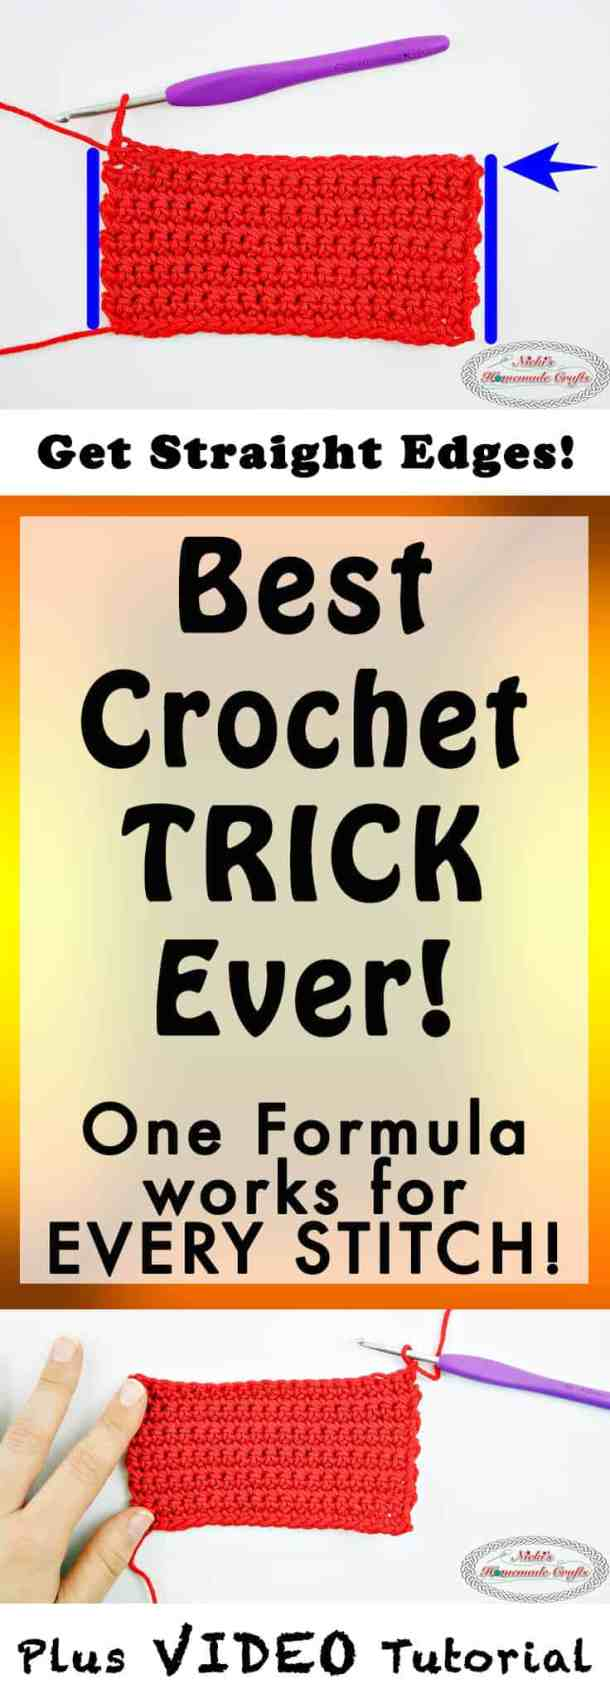 Best Crochet Trick Ever! How to always Crochet Straight Edges in Rows Every Time - Photo and Video Tutorial - Nicki's Homemade Crafts #crochet #straight #edges #rows #video #tutorial #always #best #perfect #basic #beginner #learn